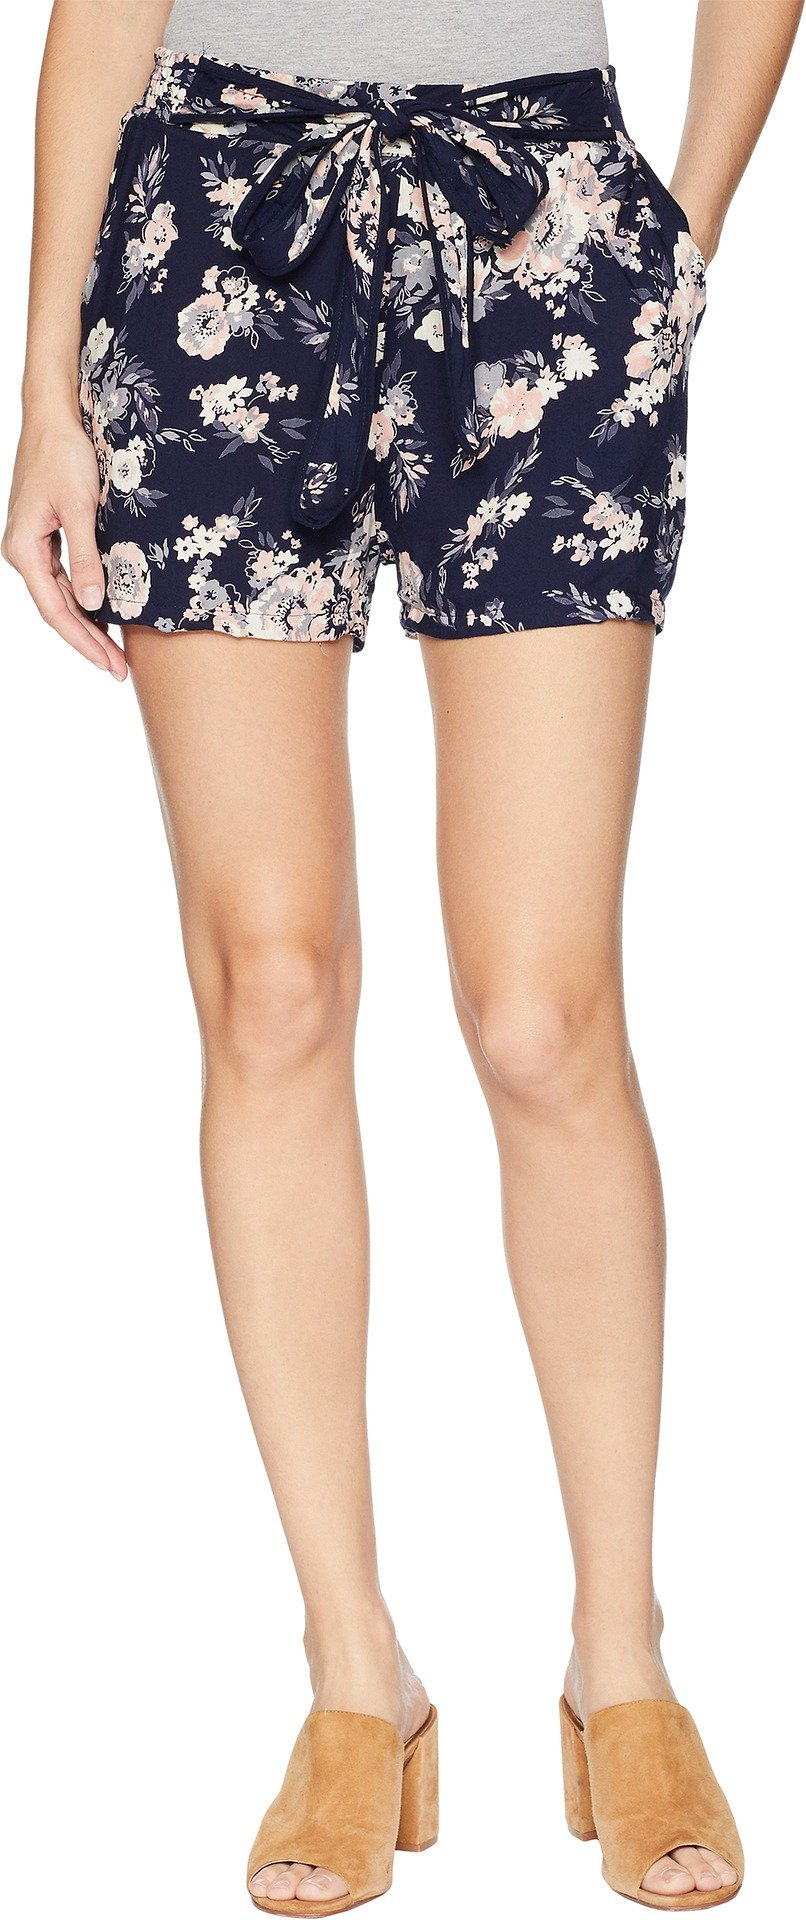 Angie Women's Print Short Navy Medium 2